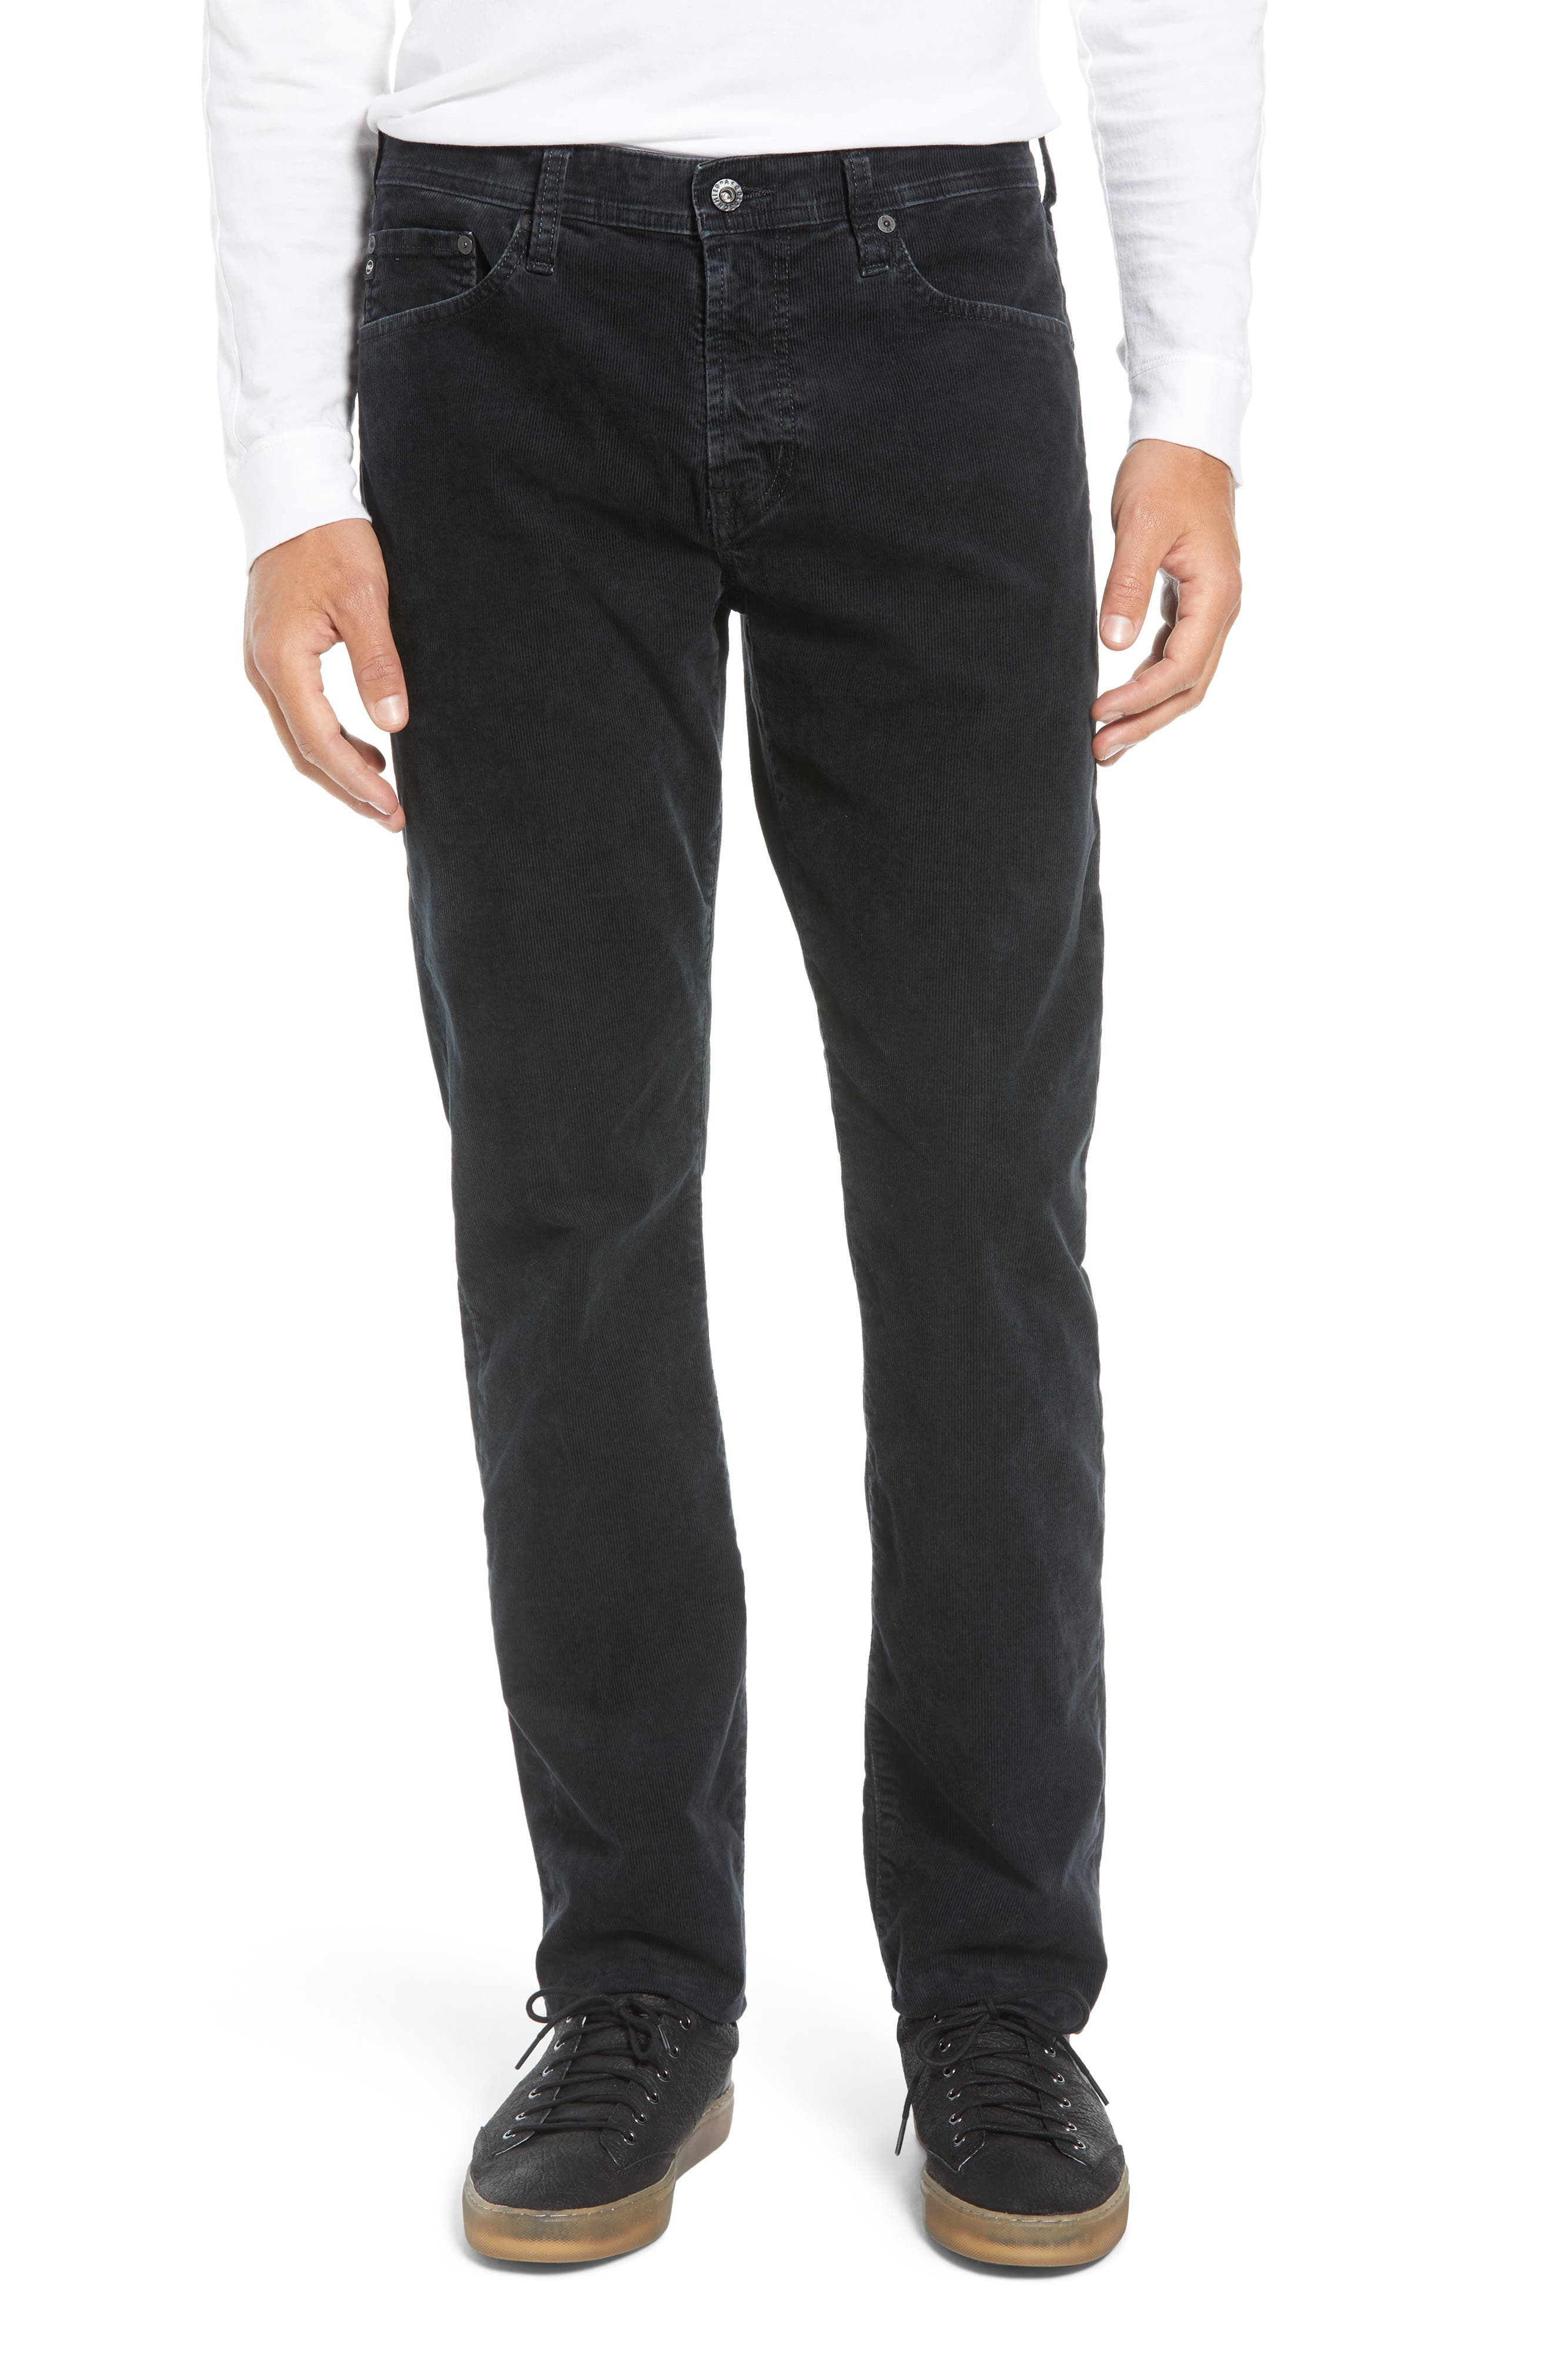 Everett Straight Leg Corduroy Pants,                             Main thumbnail 1, color,                             SULFUR ASH BLACK